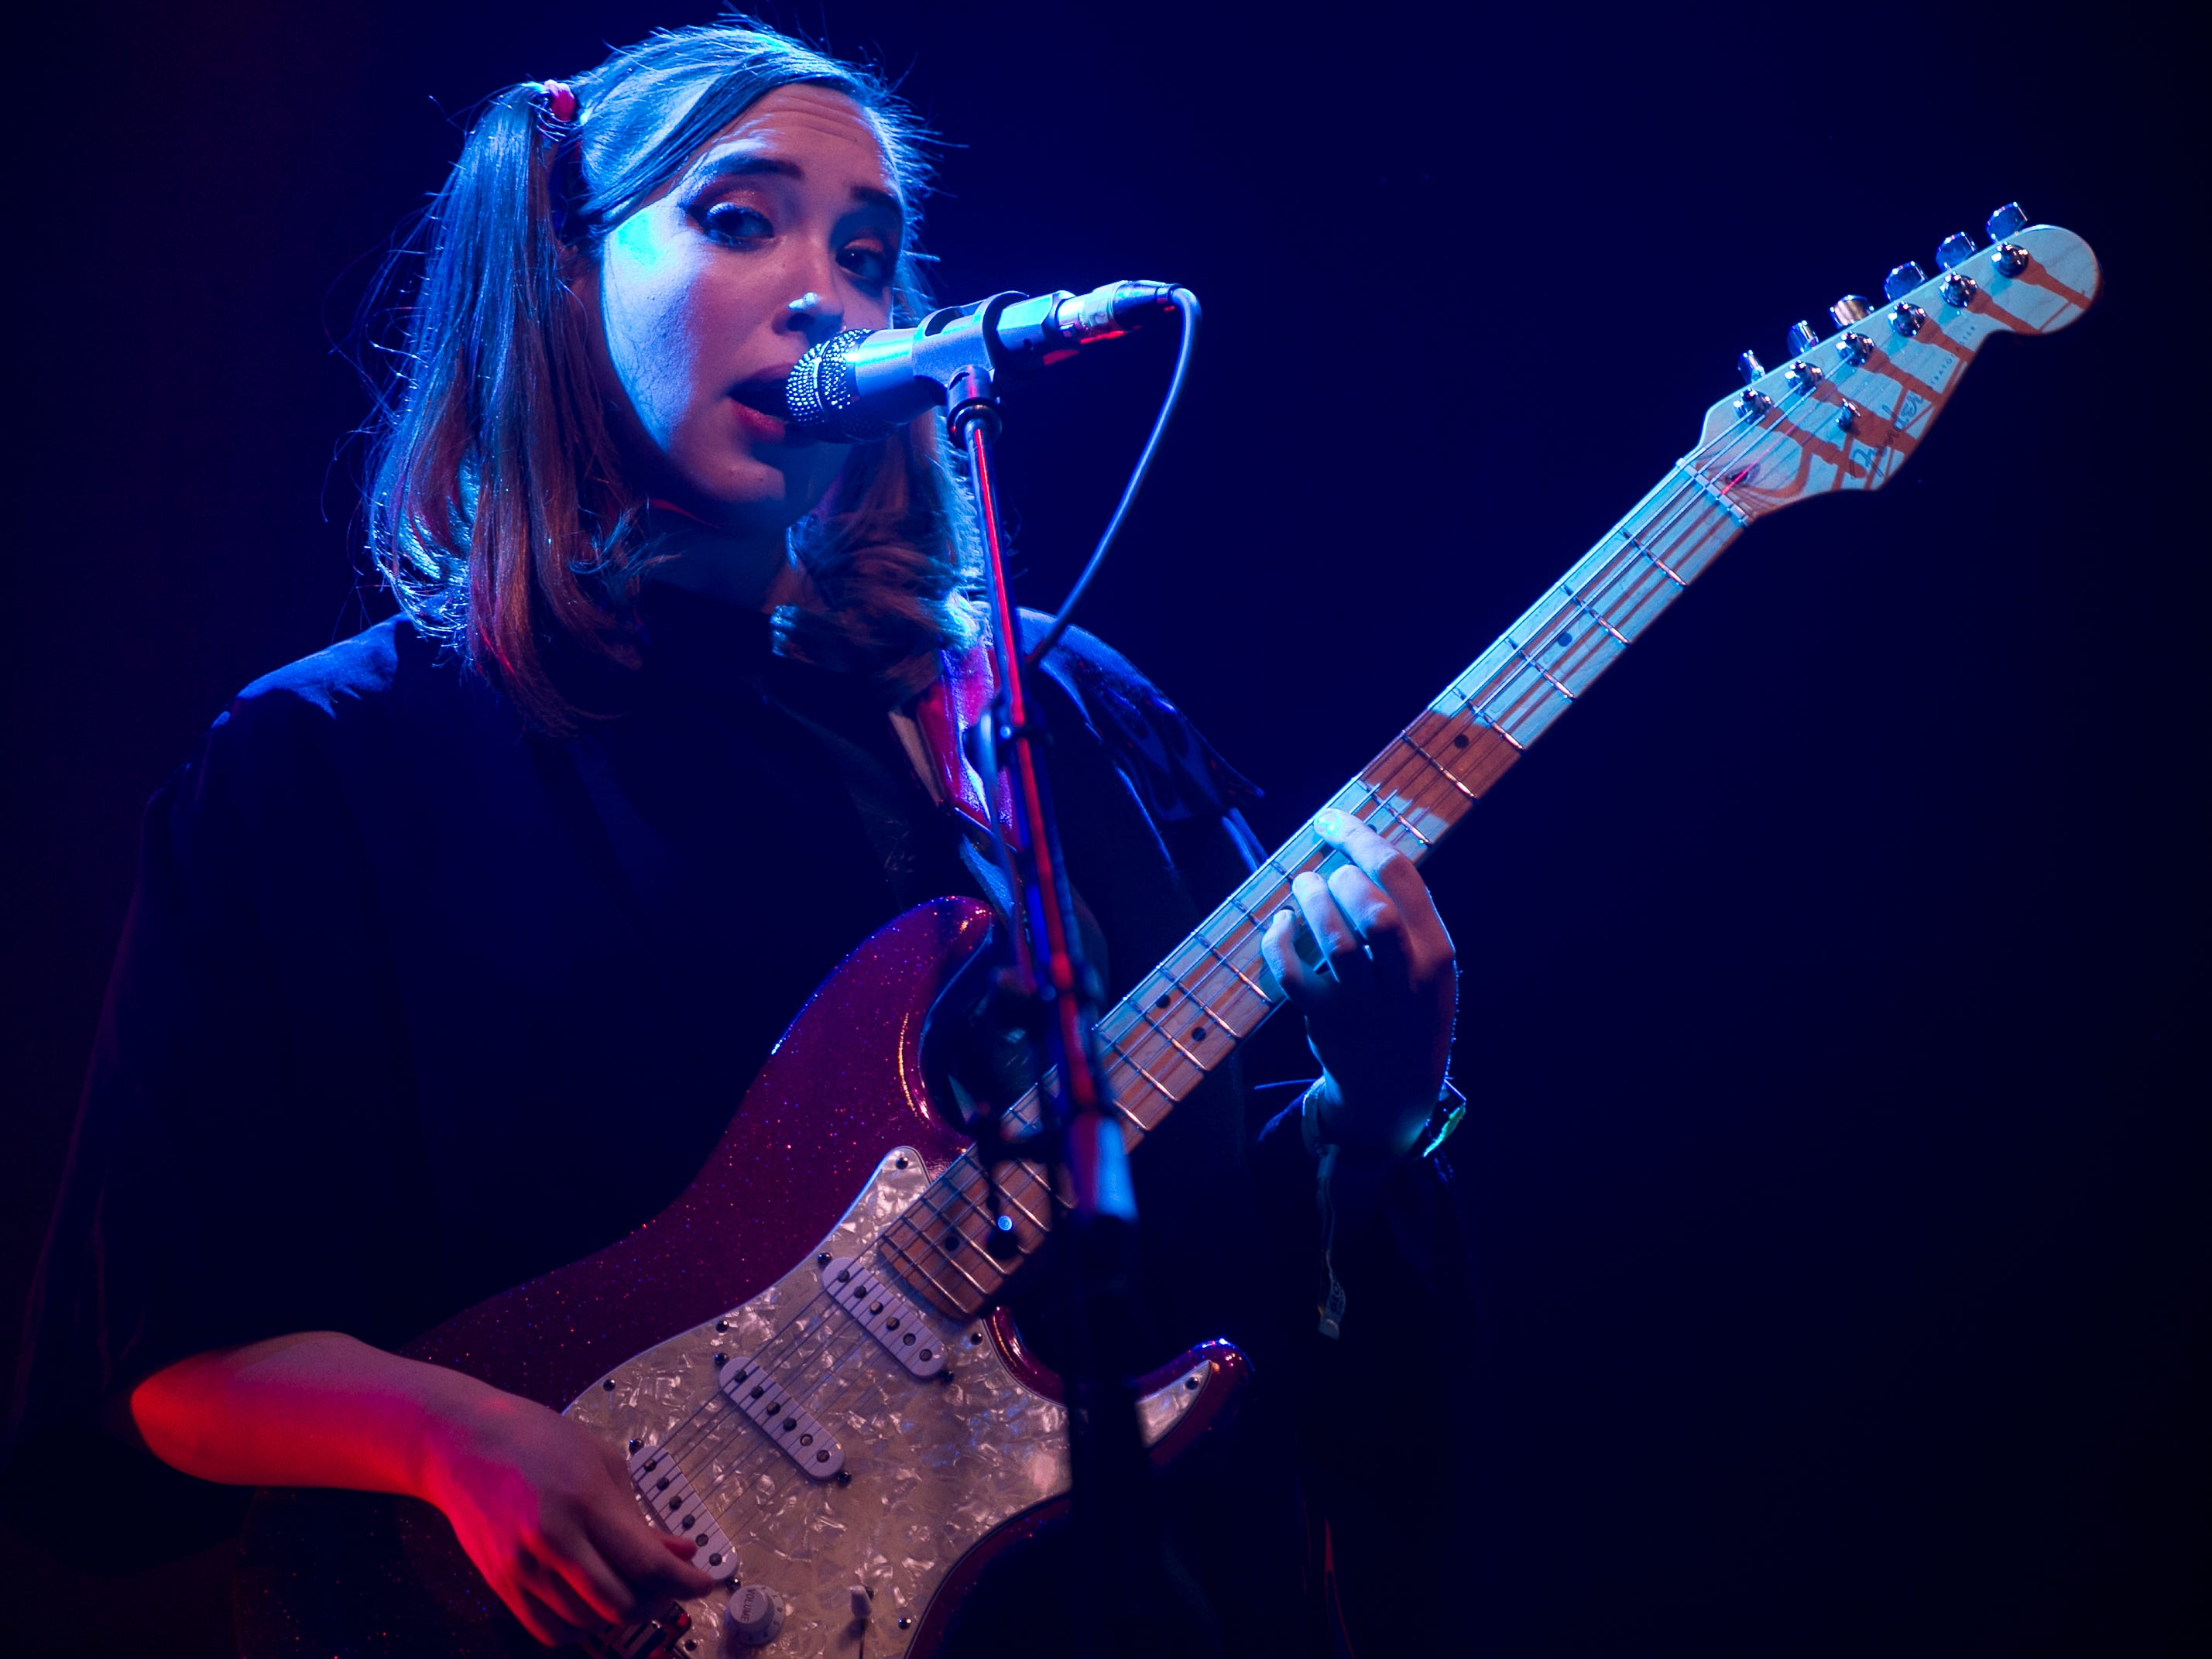 Soccer Mommy perform inside the Sonora tent at the Coachella Valley Music and Arts Festival in Indio, Calif. on Sun. April 21, 2019.